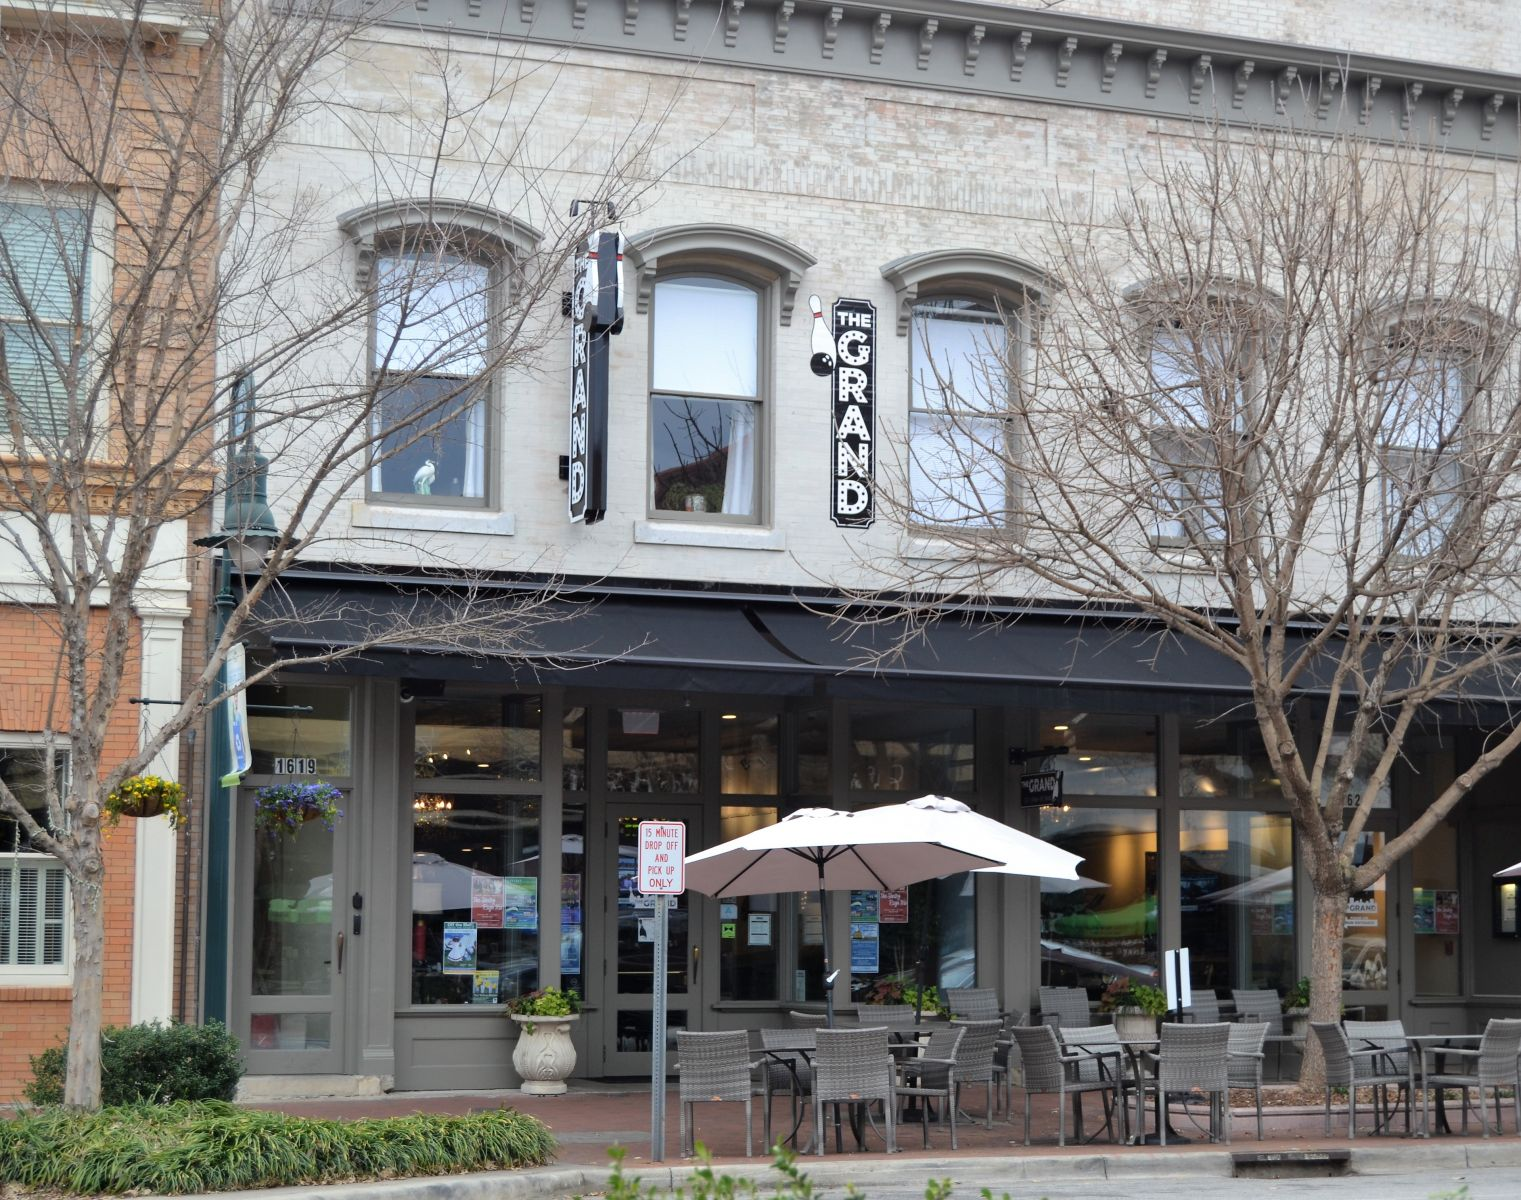 The Grand on Main, a boutique bowling alley and restaurant, is an example of a recent downtown renovation project that took advantage of historic tax credits. (Photo/Melinda Waldrop)